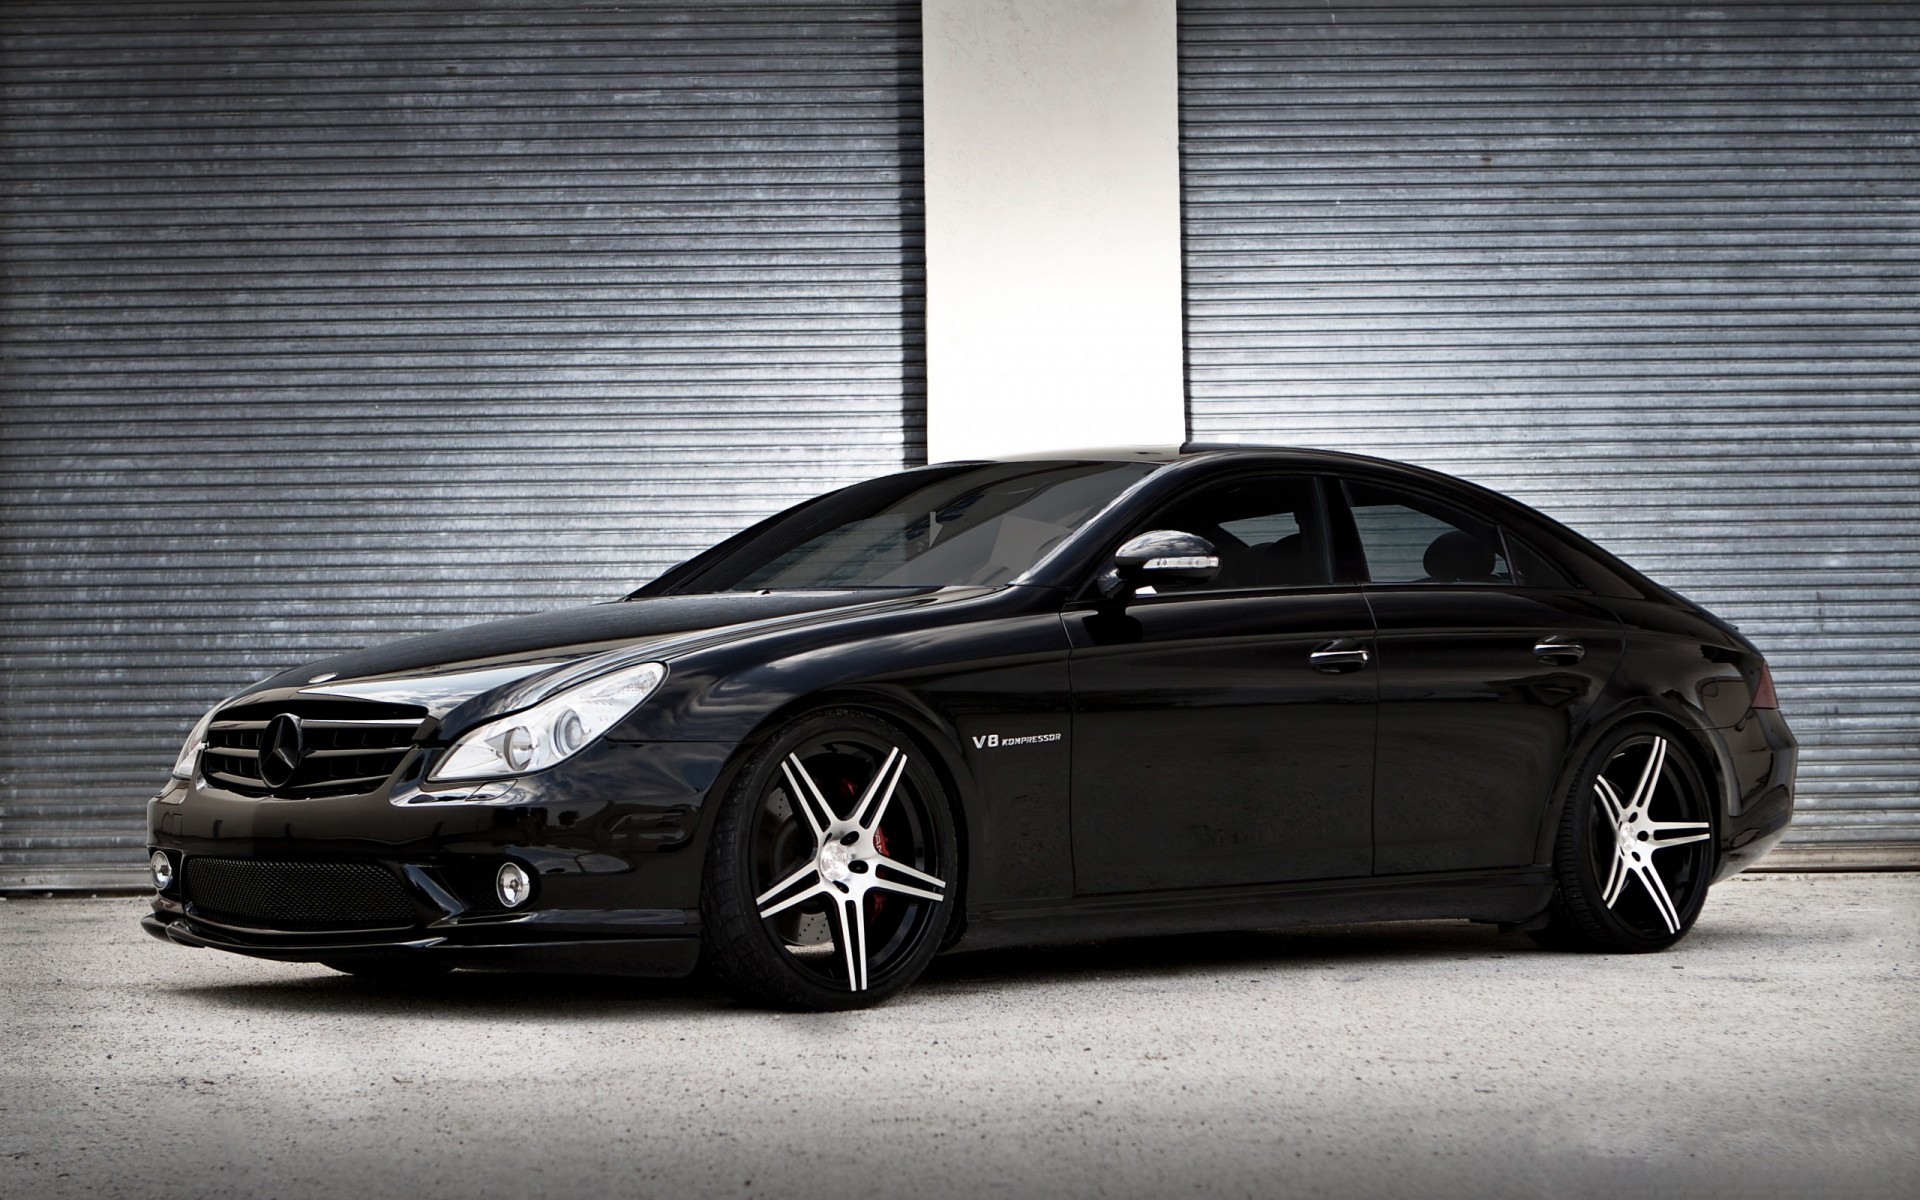 Mercedes benz cls55 amg wallpaper hd car wallpapers id for Cars of mercedes benz